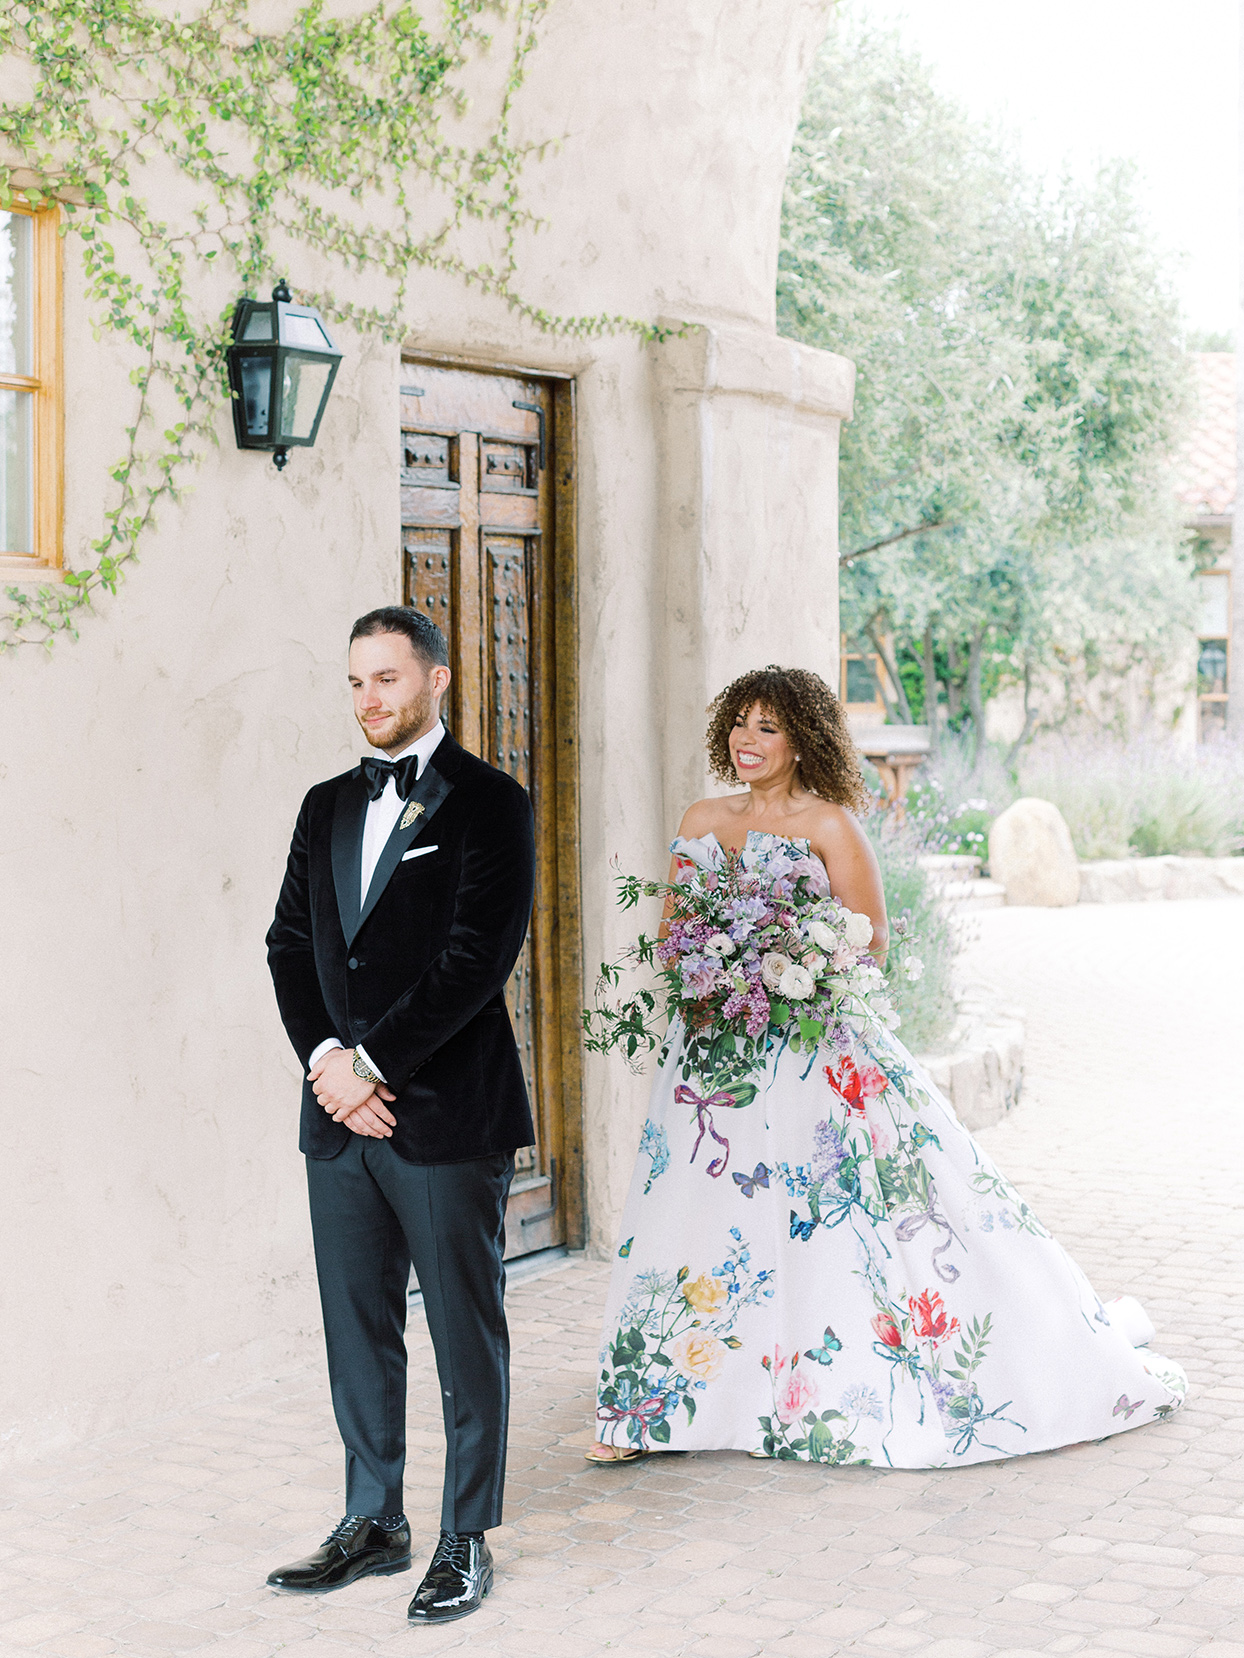 raina salih wedding first look in courtyard